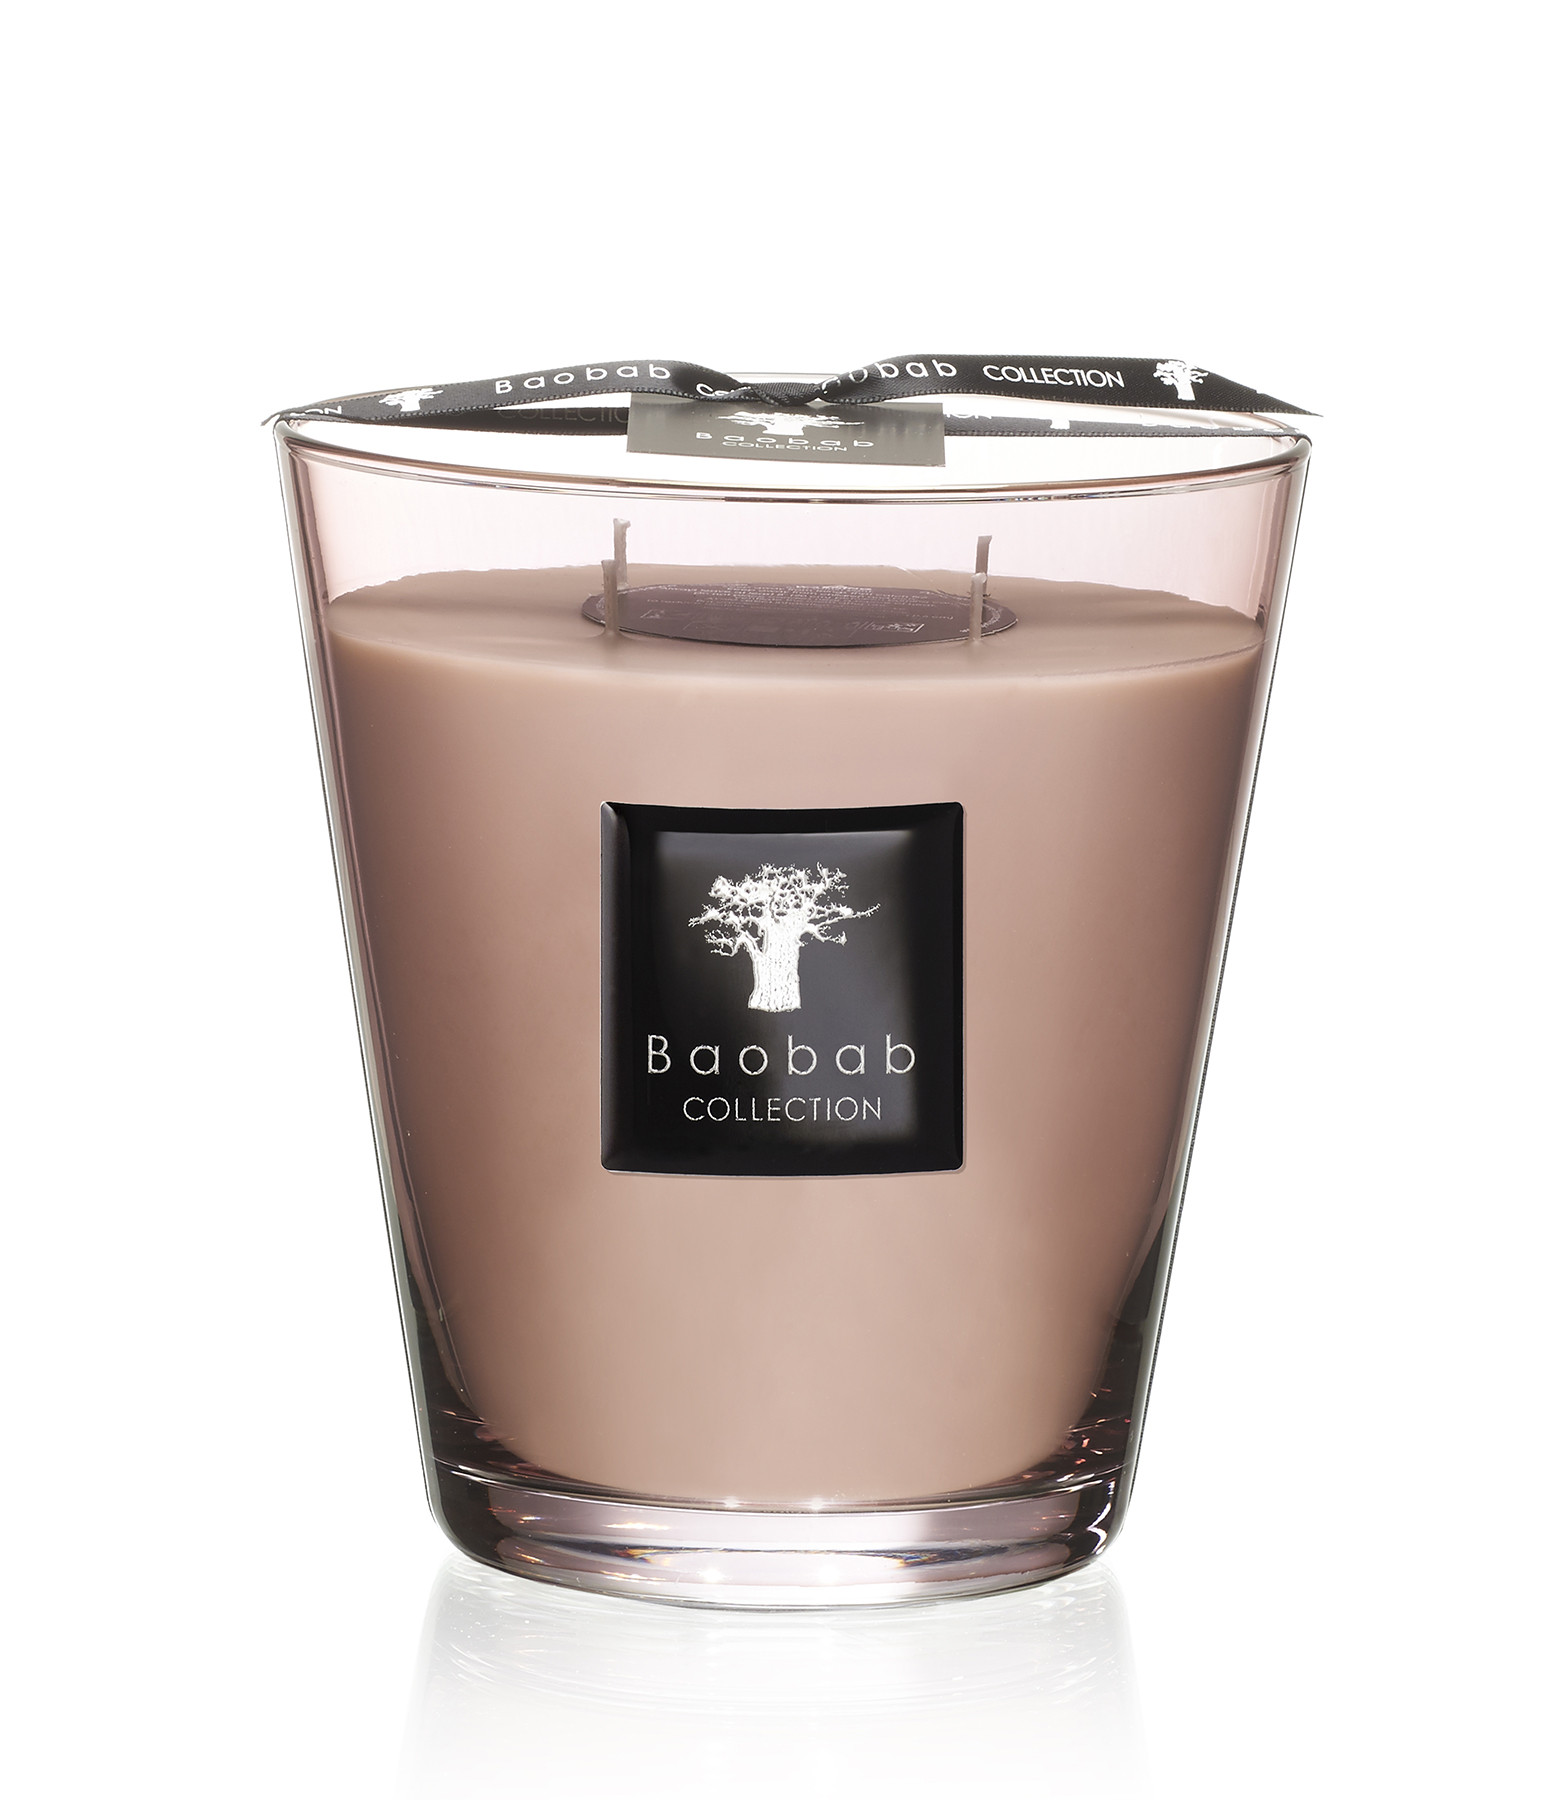 BAOBAB COLLECTION - Bougie Max 16 All Seasons Serengeti Plains Luster